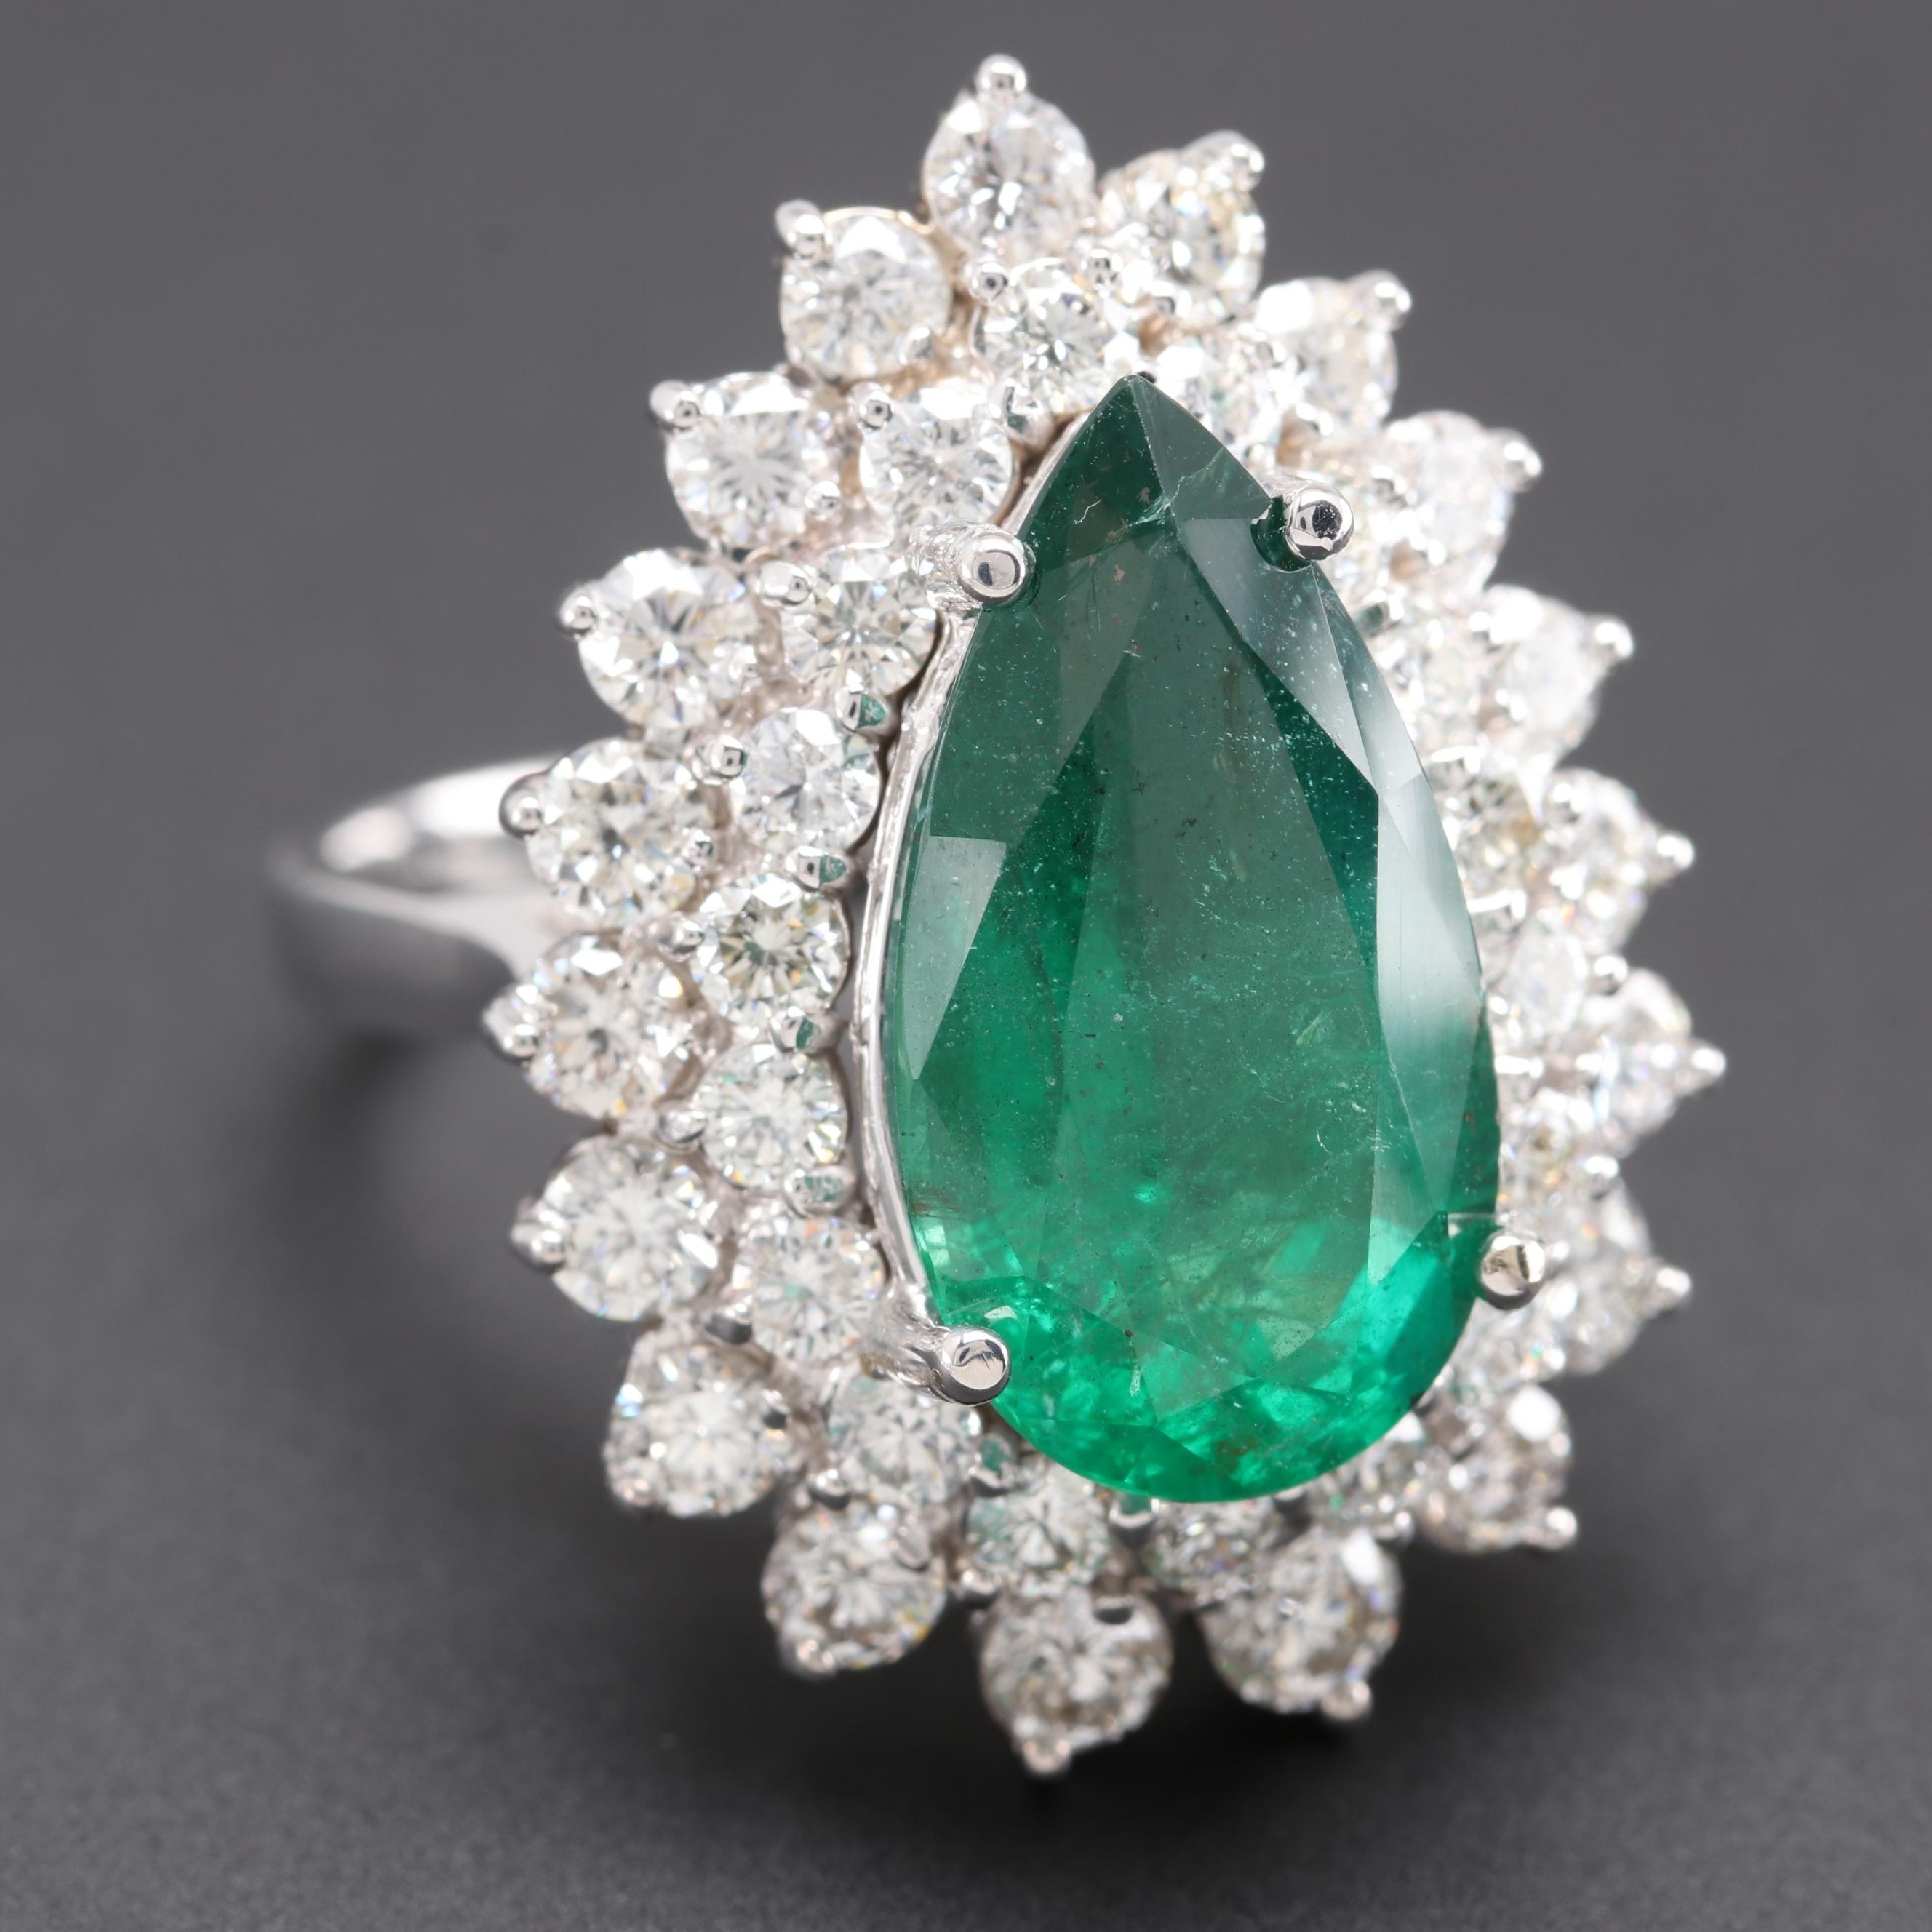 18K White Gold 4.97 CT Emerald and 2.14 CTW Diamond Ring